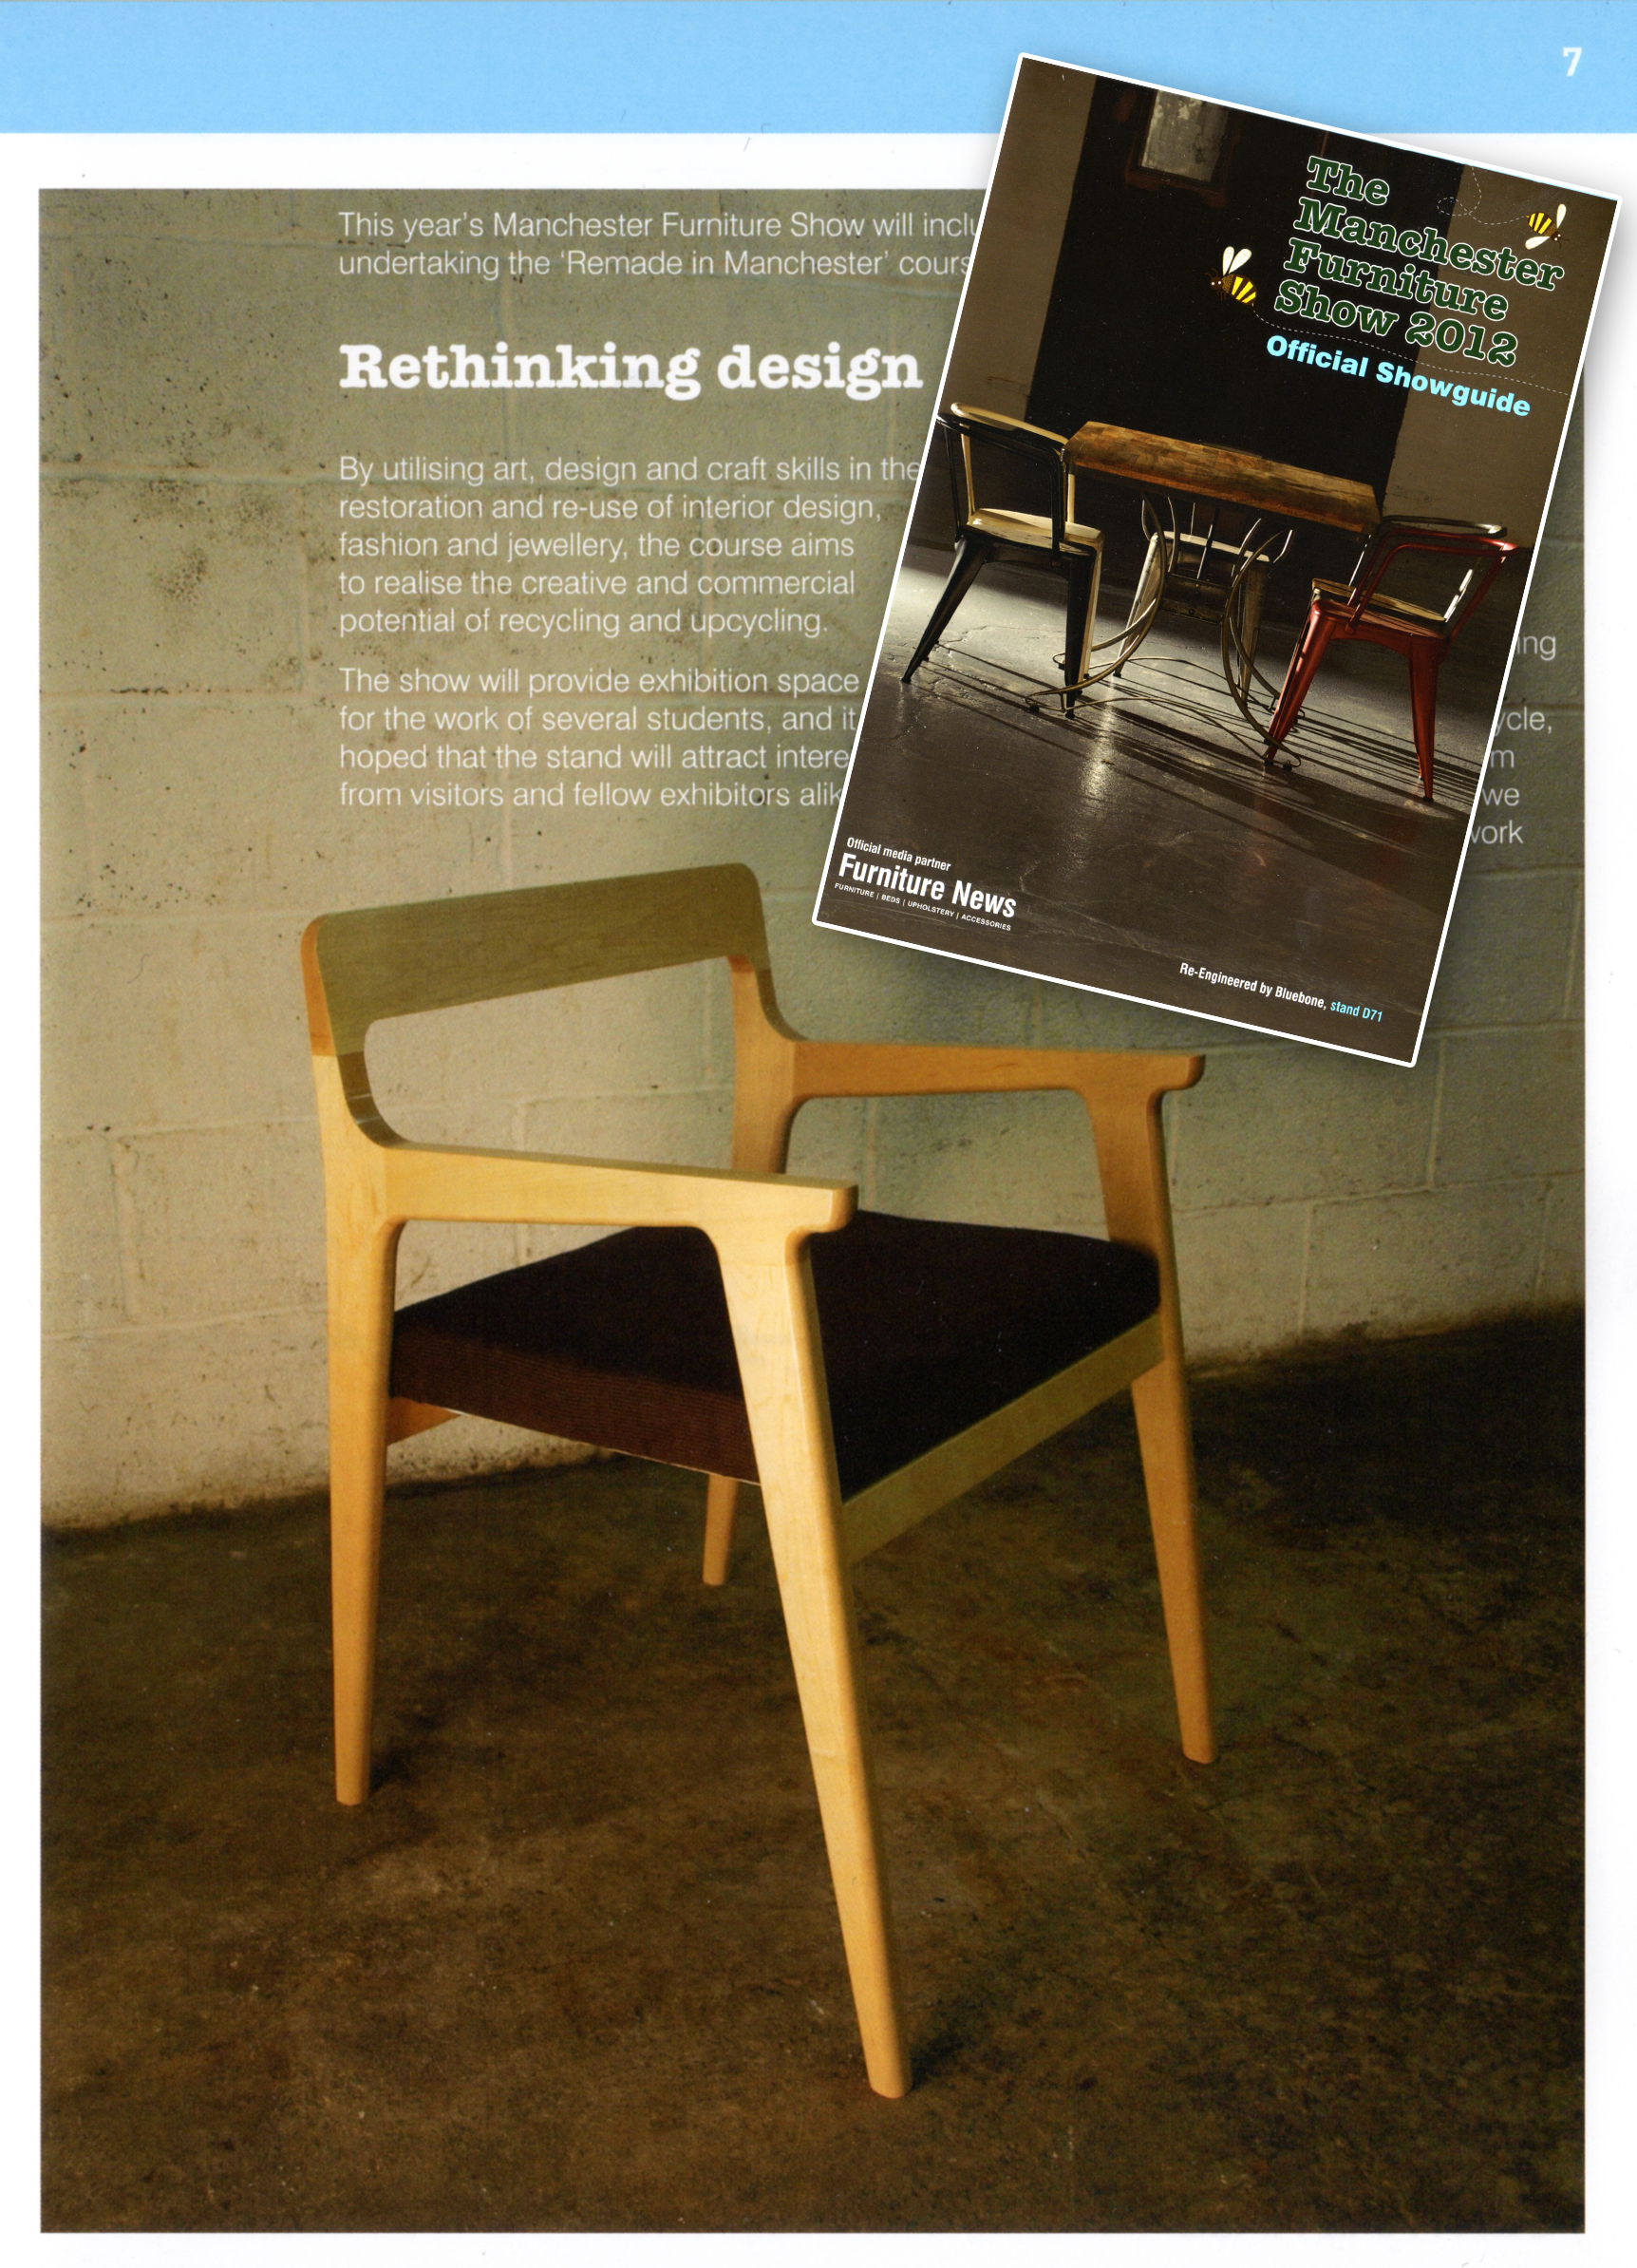 Manchester Furniture Show Guide 2012 - Dale Chair